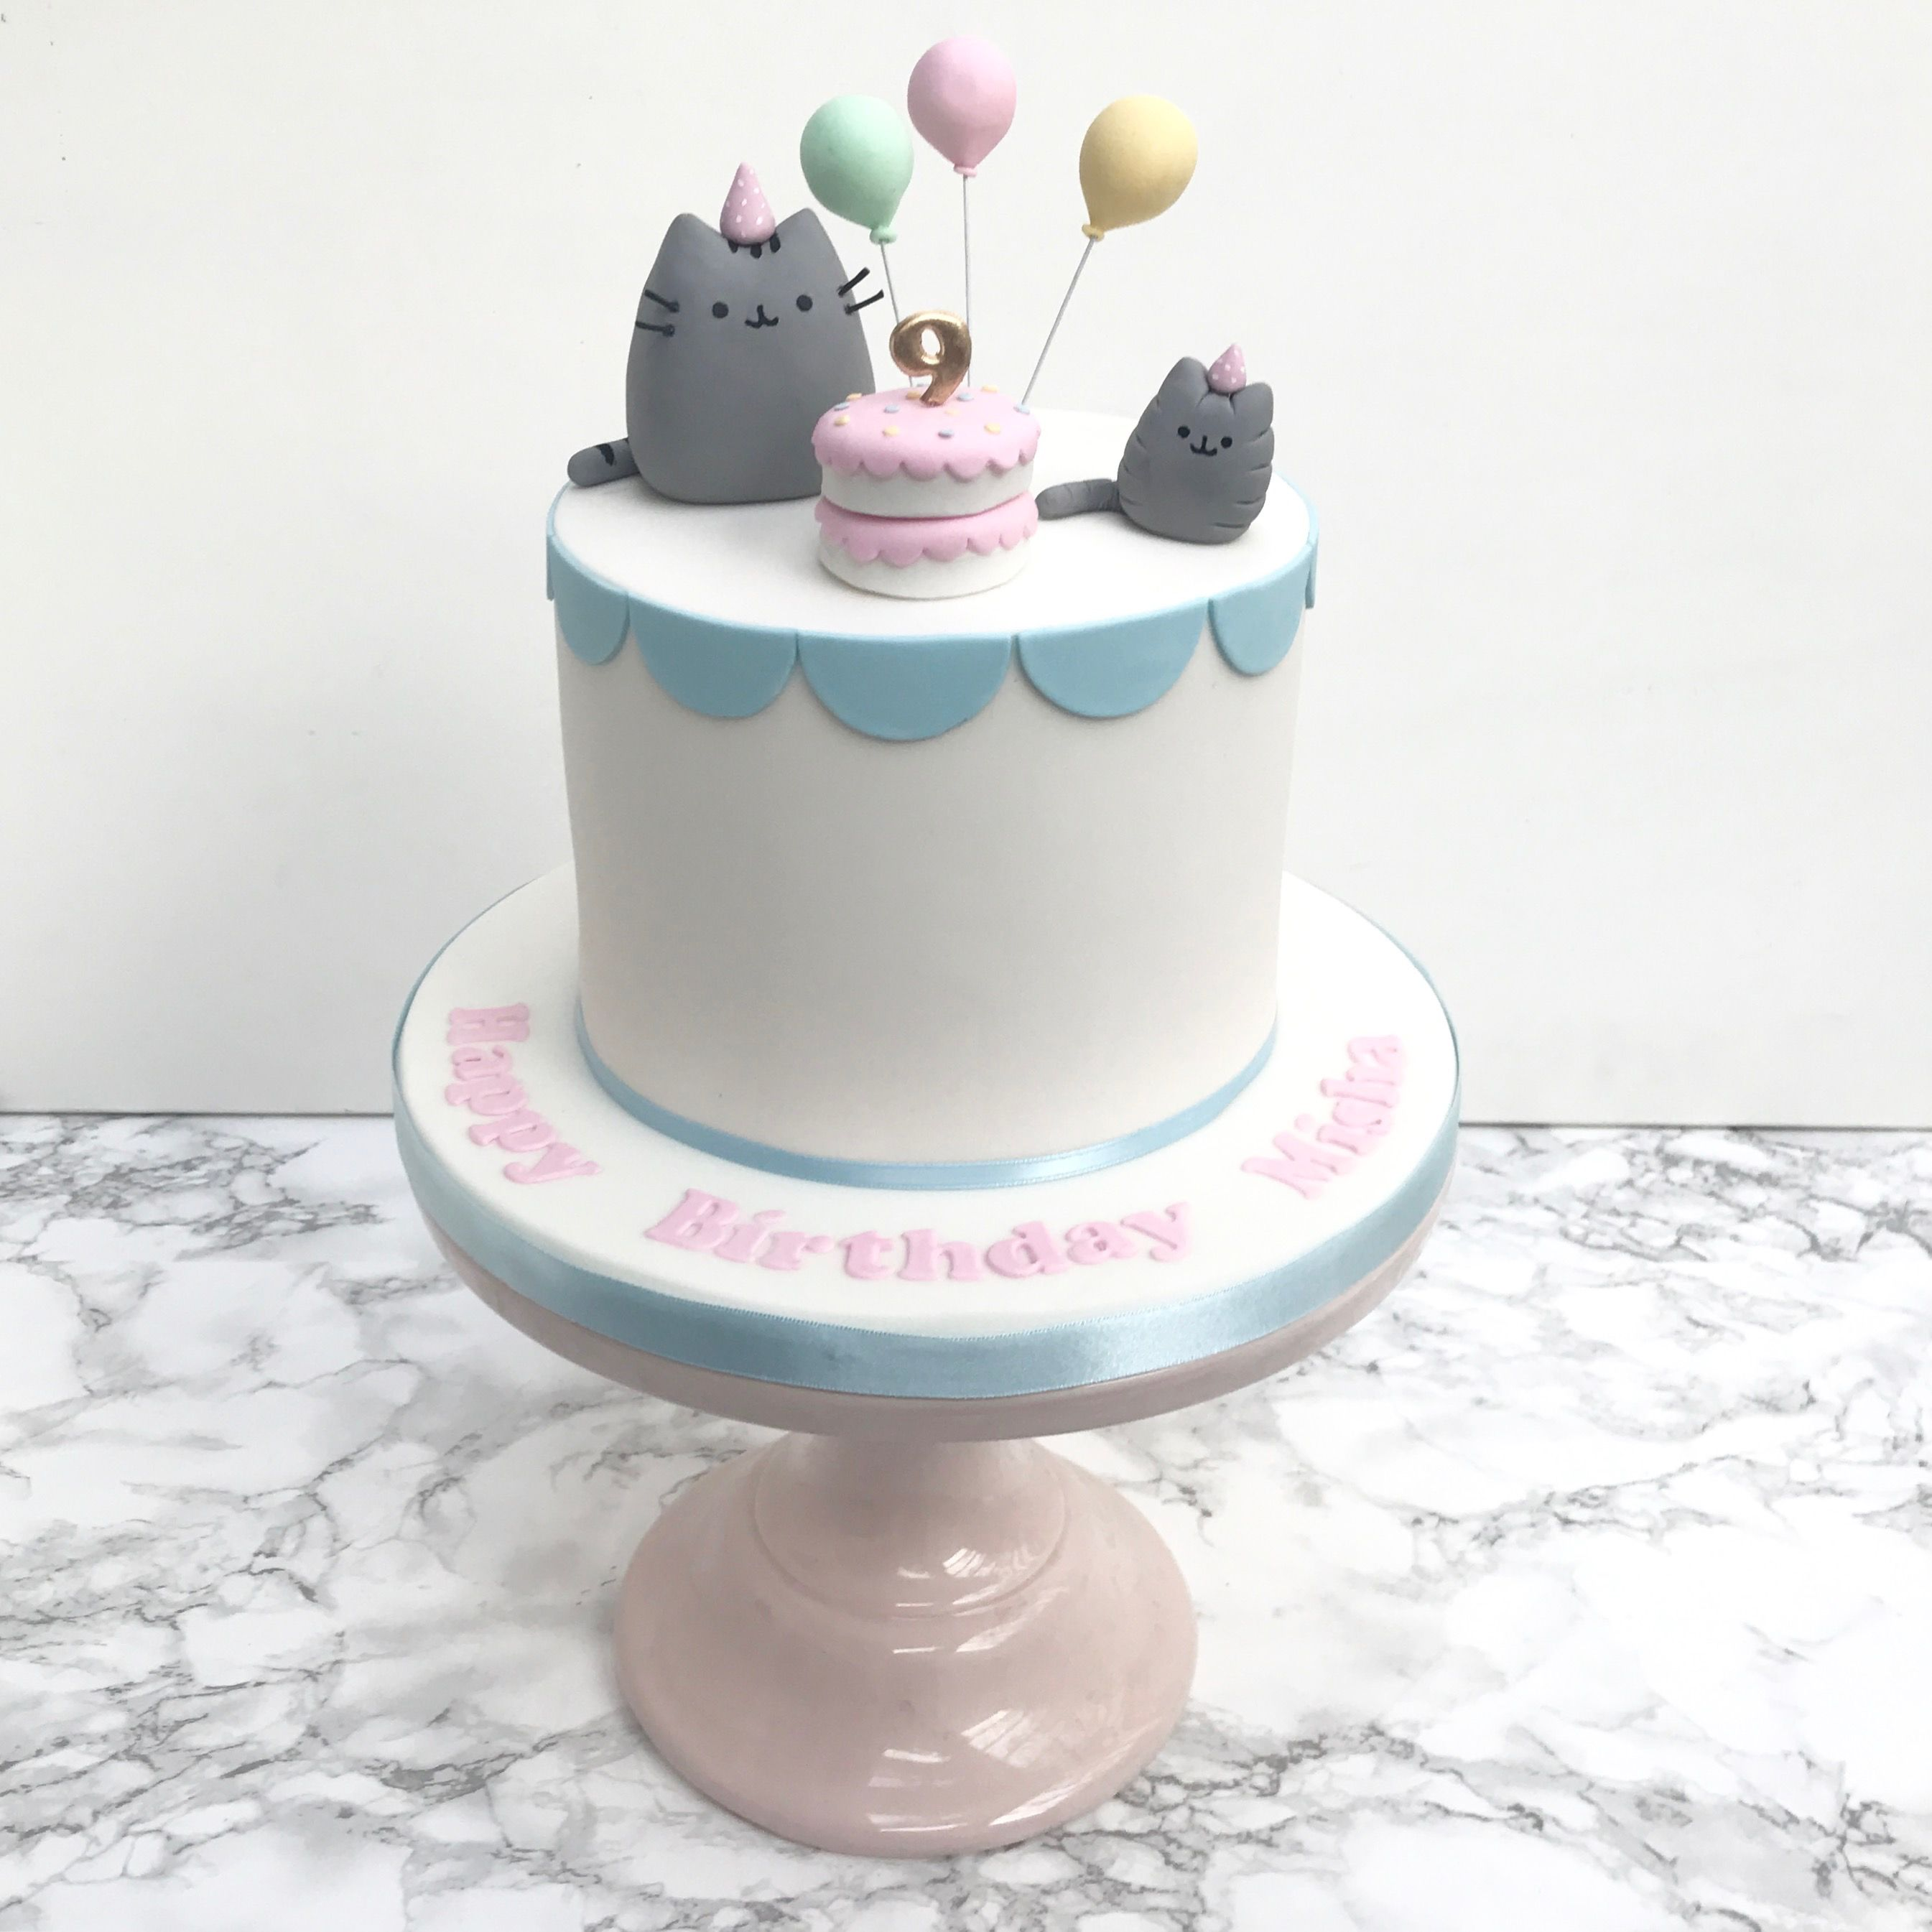 Pusheen Birthday Cake For A Girl With Balloons And Scallop